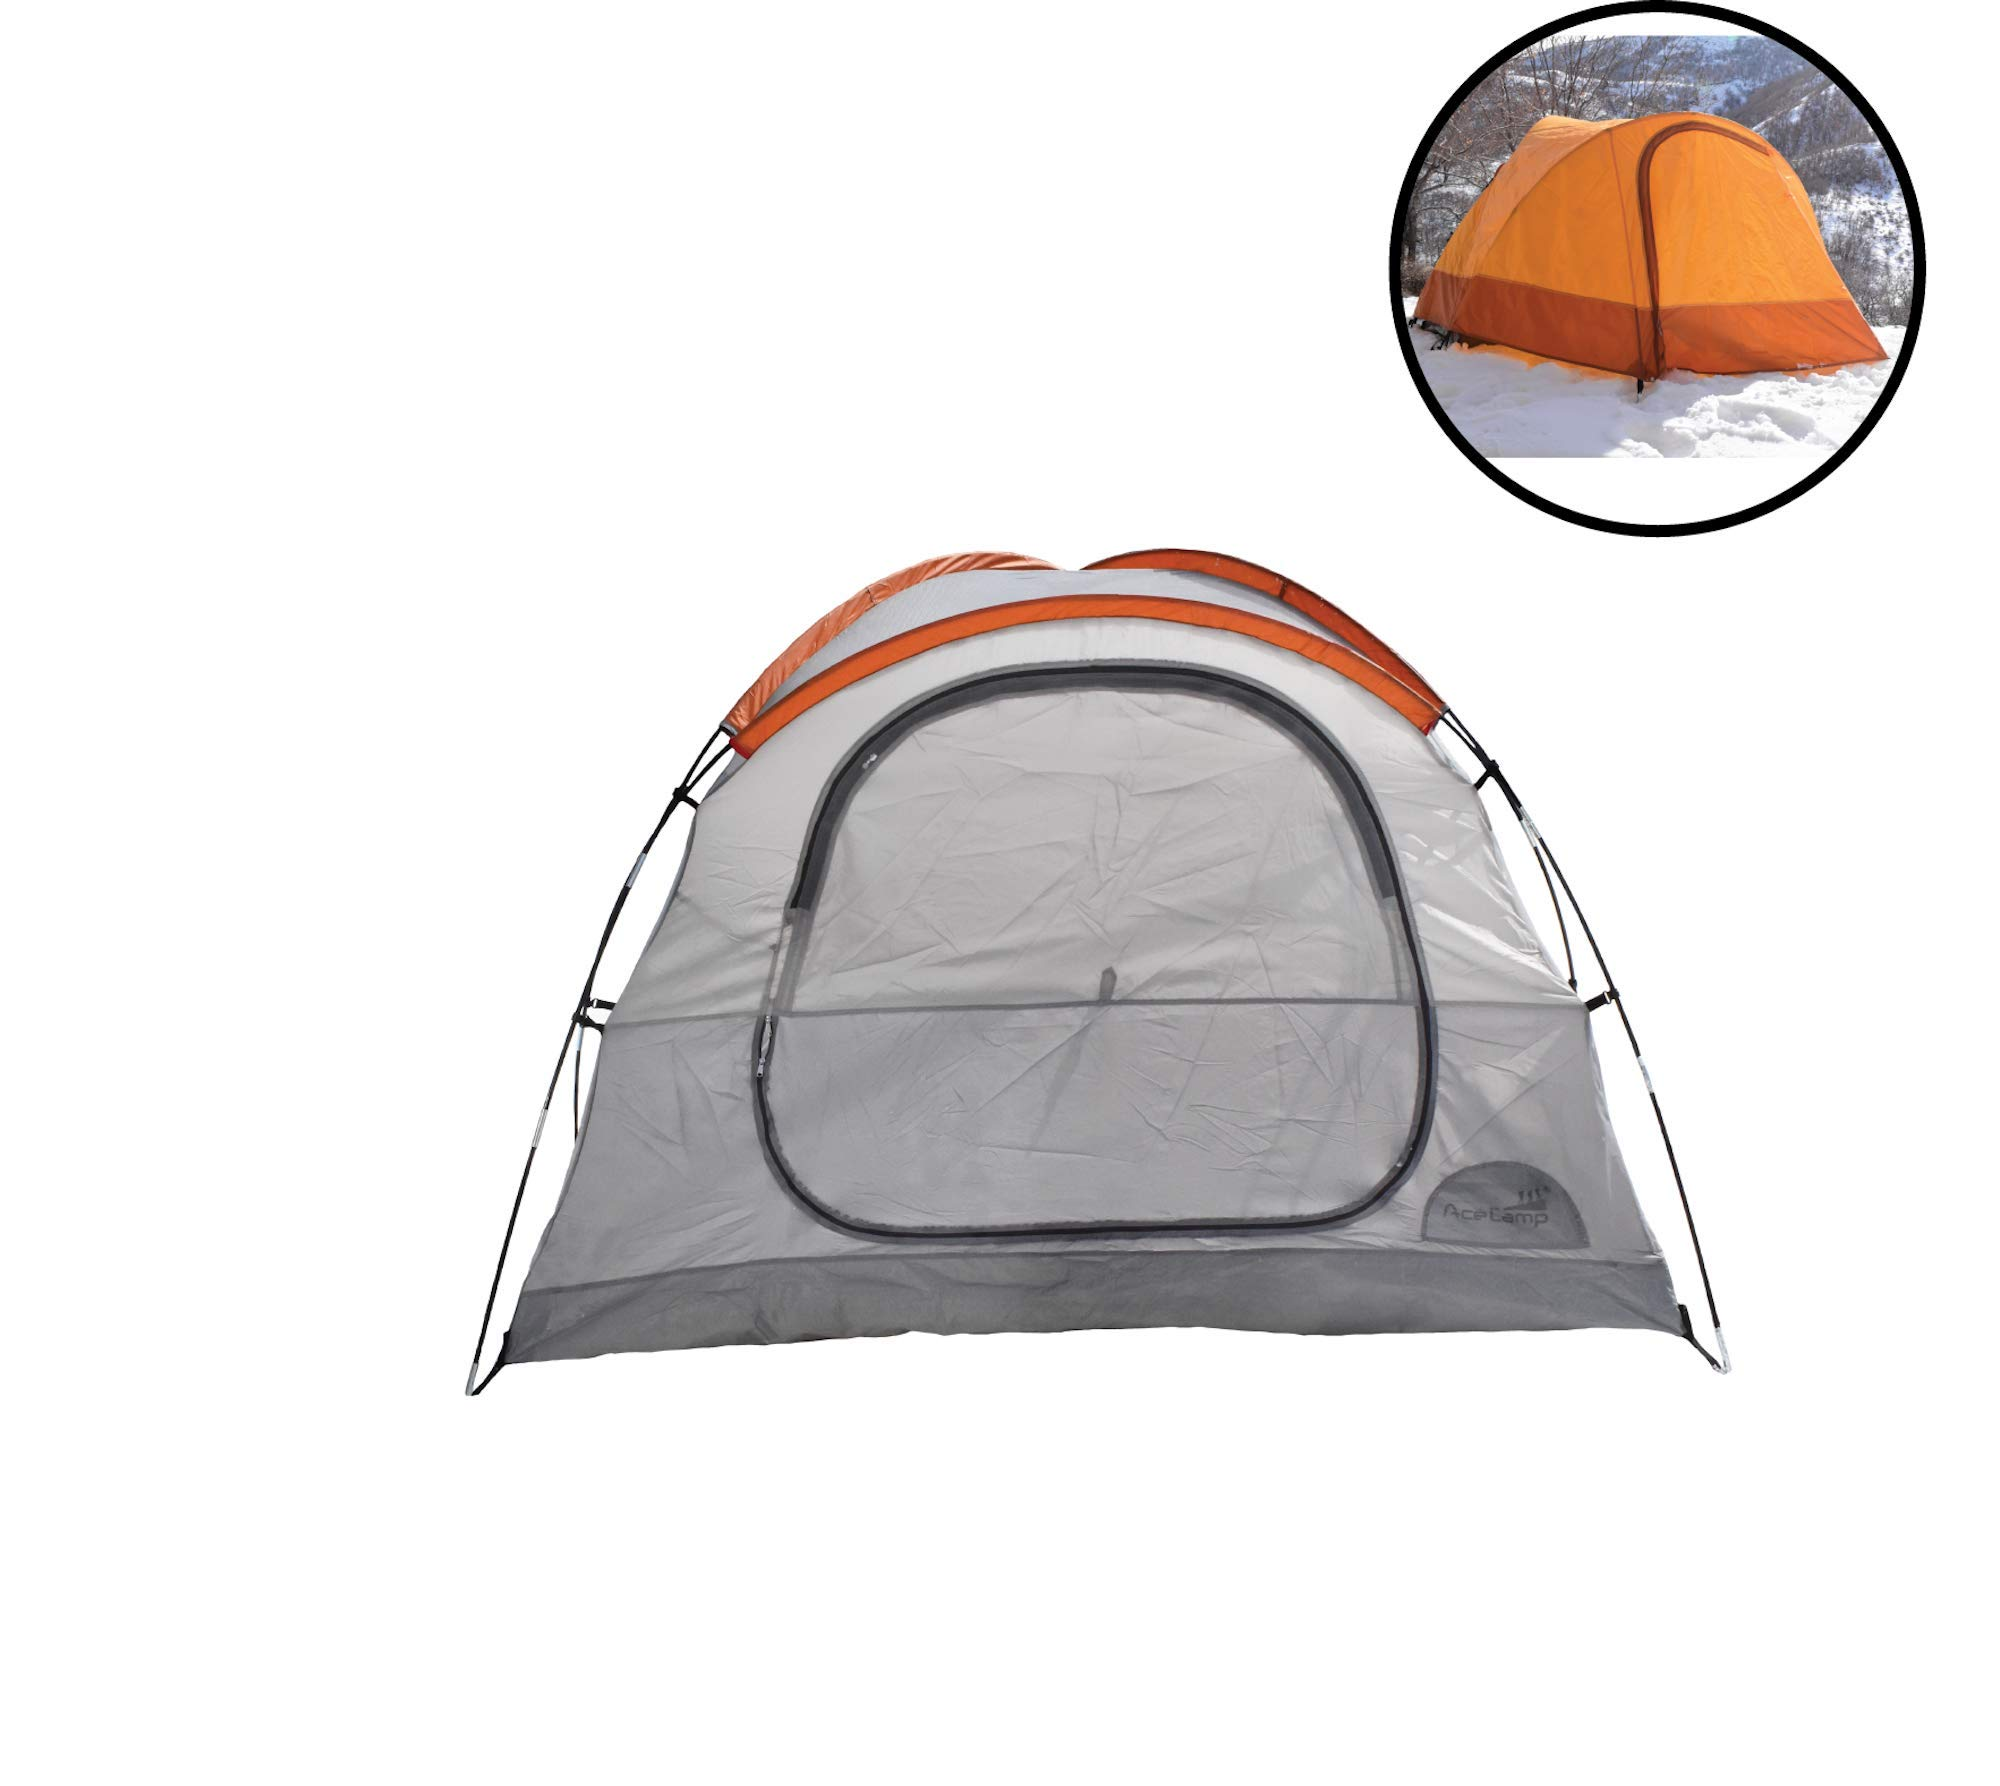 AceCamp Horizon 3-Person Tent, Portable Waterproof Camping Tent for Three People, Outdoor Easy Setup Tent, Giant Vestibules, Gear Loft & Storage Pockets, 3 Man Tent by AceCamp